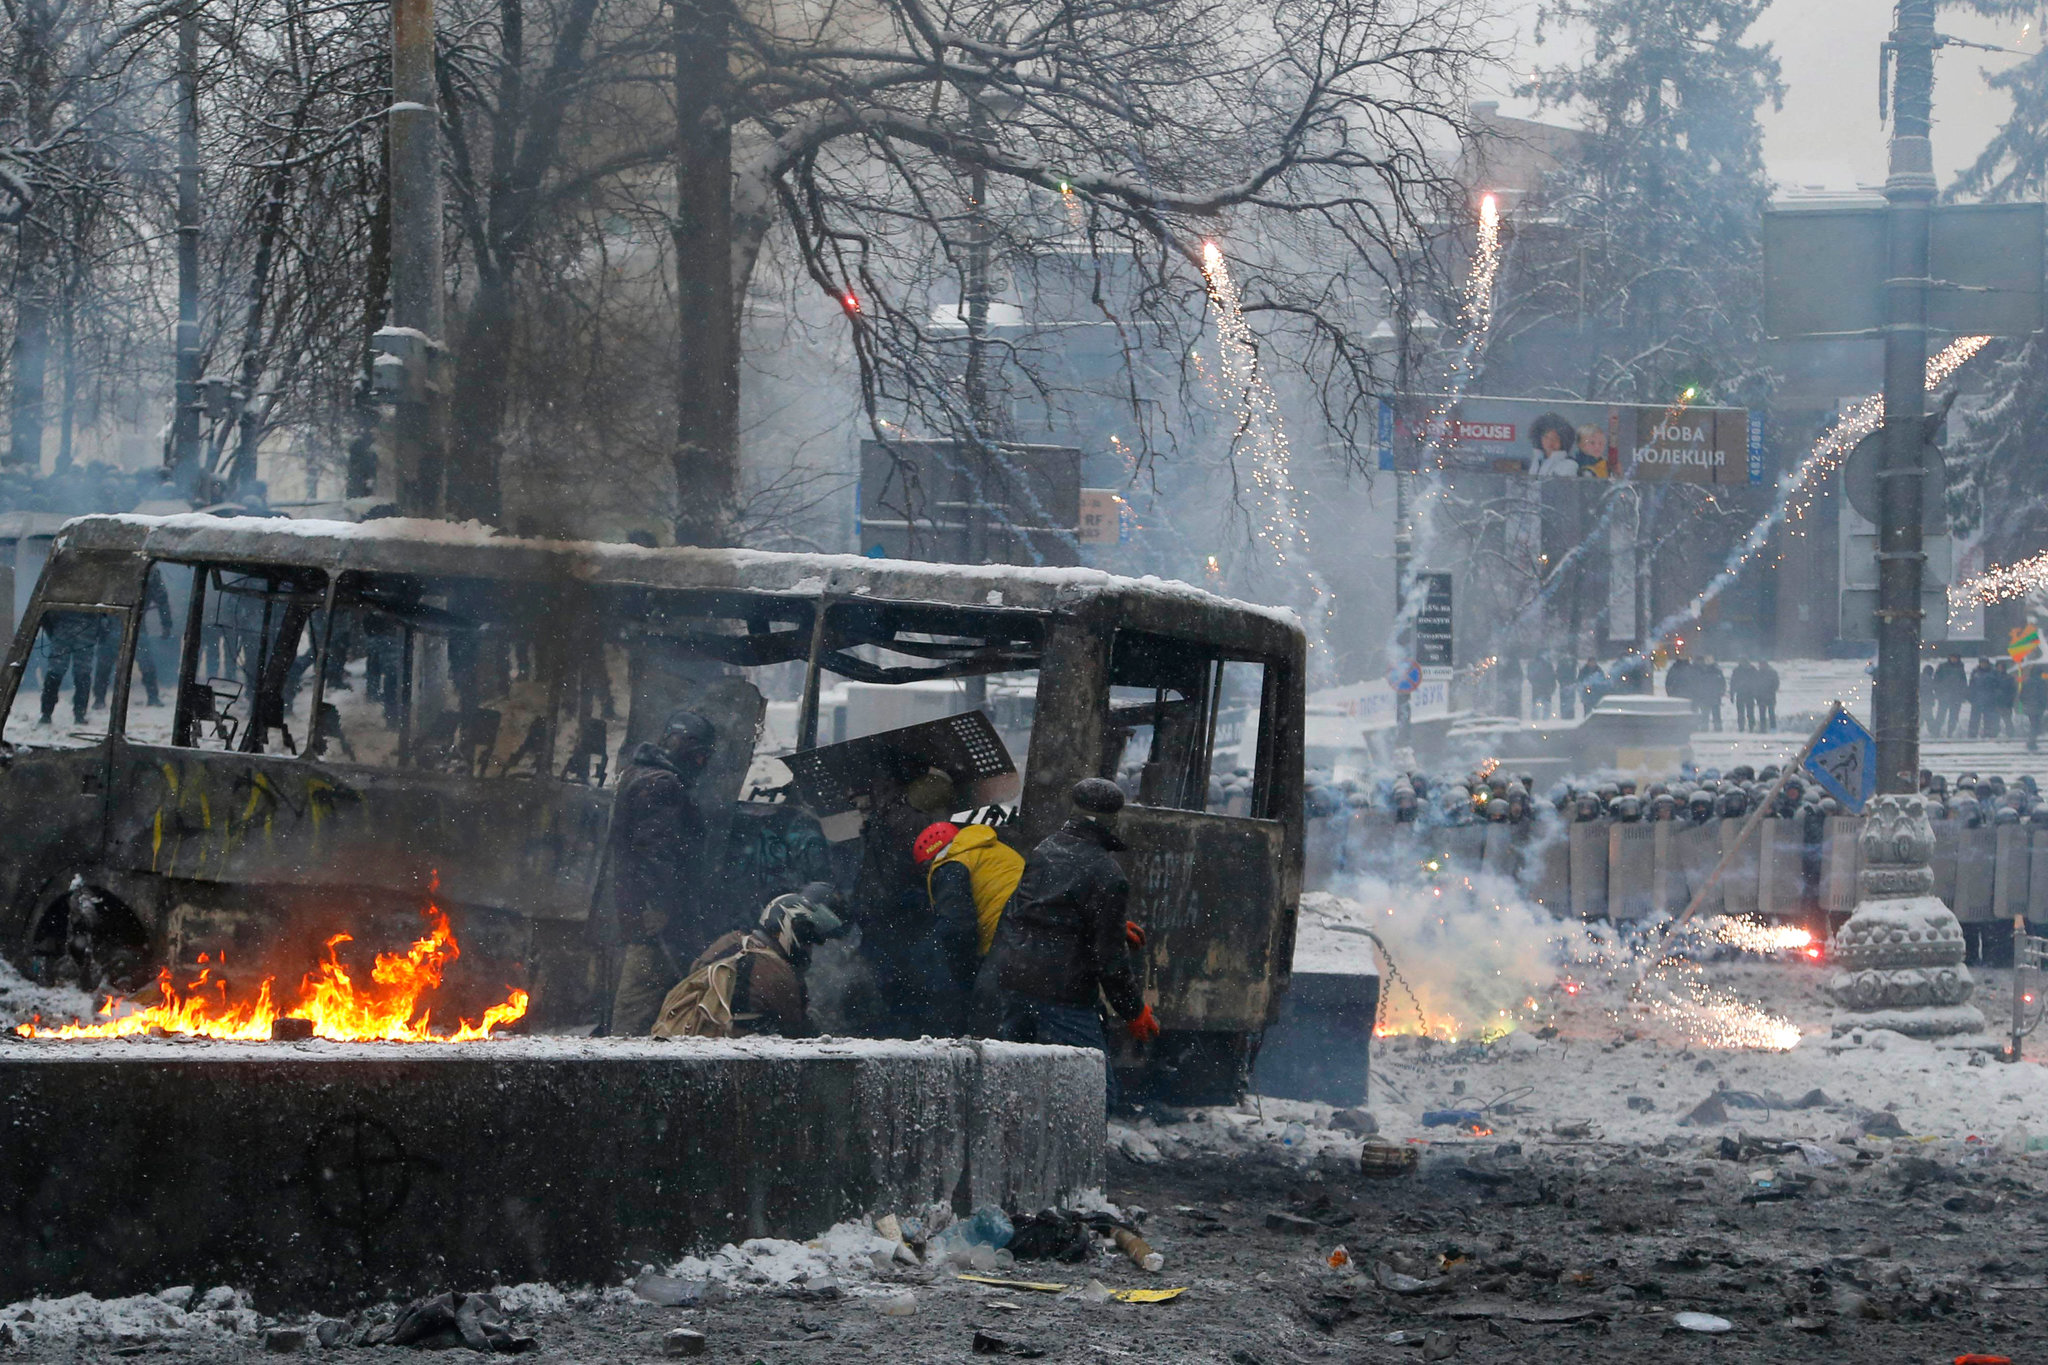 The violent standoff edged Kiev toward a state of emergency.